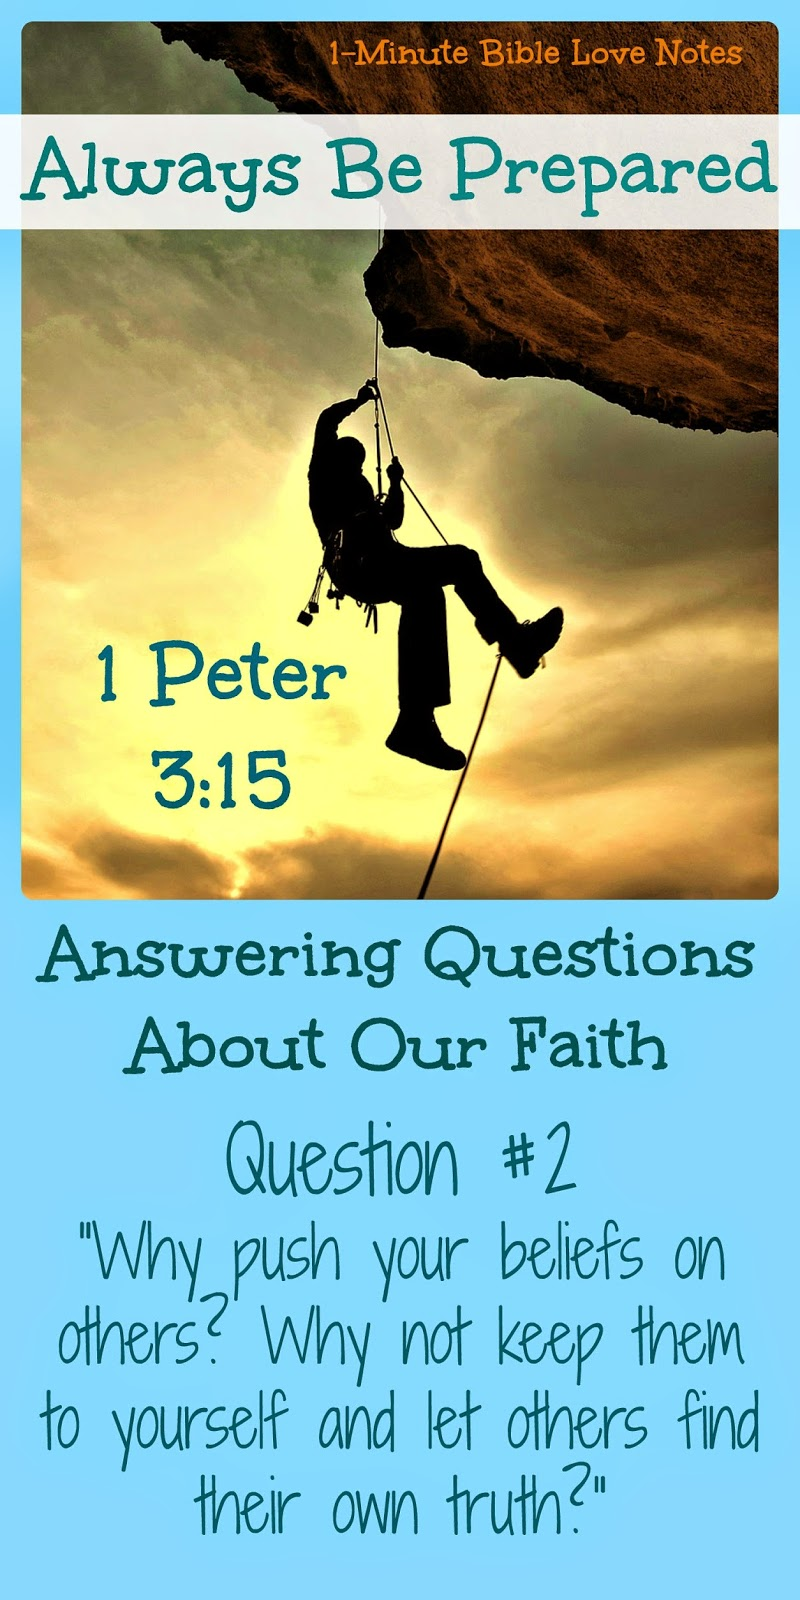 Why share your faith with others? Why not let others find their own truth?